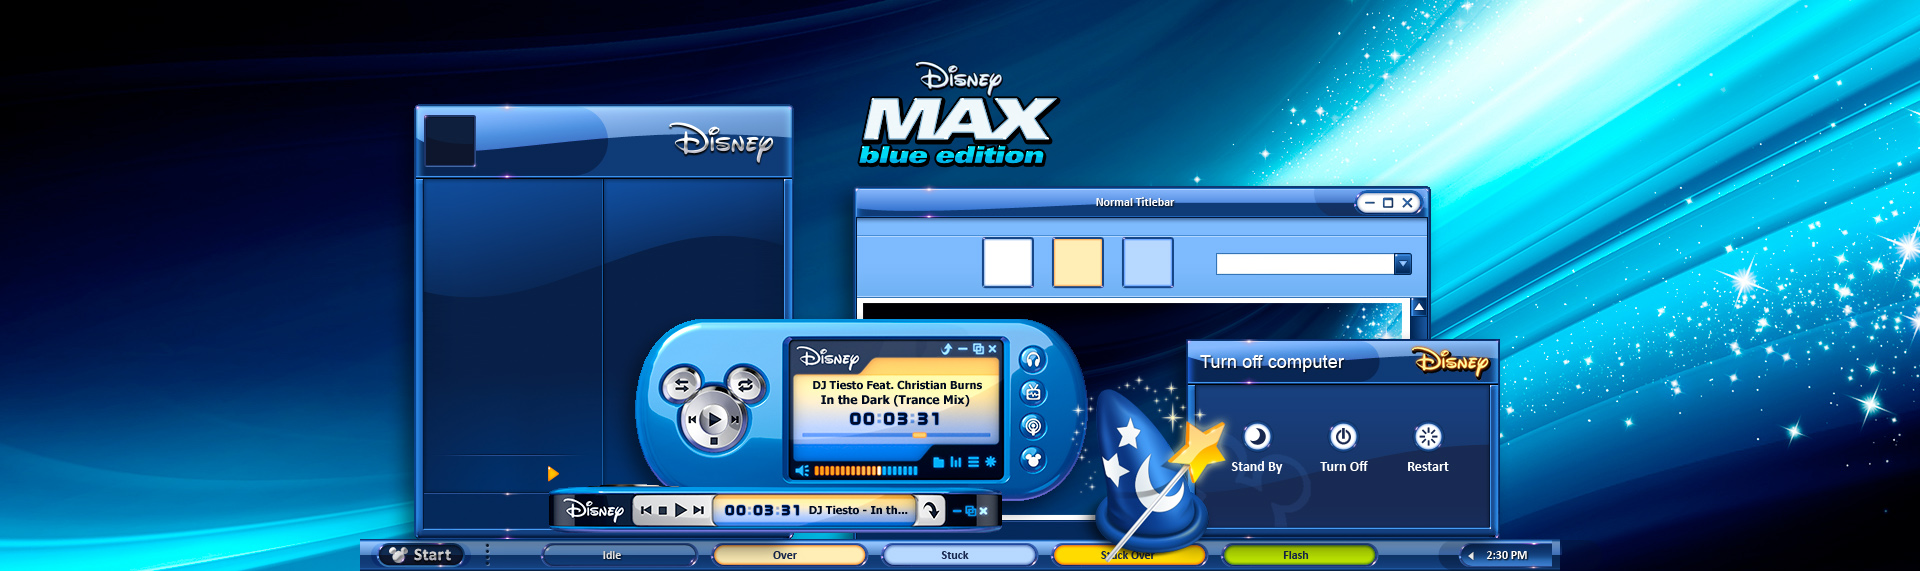 "Disney Max  Client: The Walt Disney Company  Powered by The Skins Factory's Hyperdesk theme solution, The Skins Factory created these magical Disney themes for The Walt Disney Company's netbook - Magic Blue. Featuring glossy blue & pink themes, Disney-centric desktop icon suite and magical wallpapers. While a ""lite"" version is sold with the netbook, the Hyperdesk version seen here is no longer available. Copyright. The Walt Disney Company. All Rights Reserved."